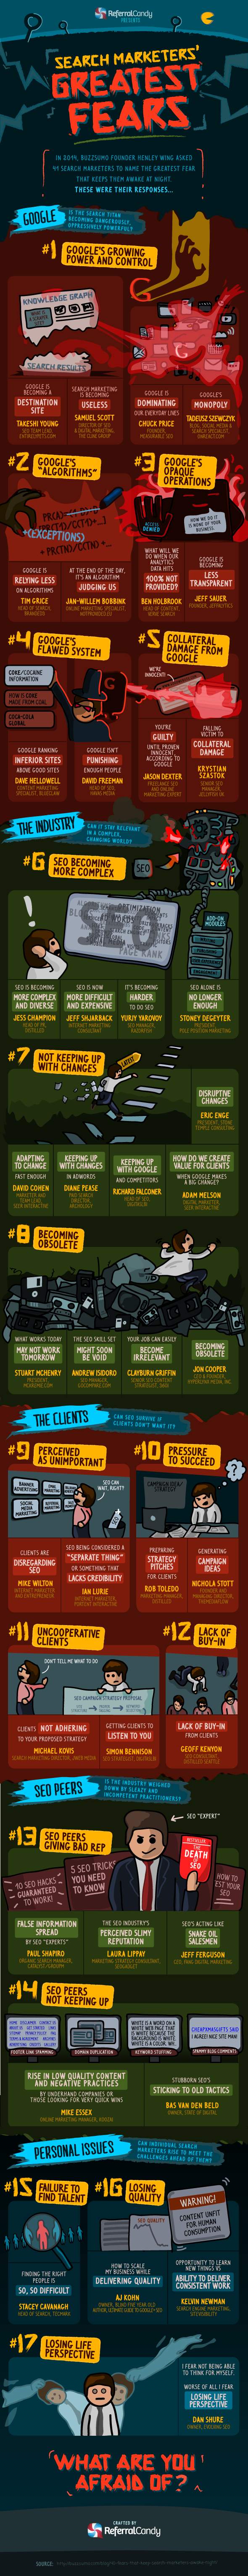 #Infographic: Search Marketers' Greatest Fears - #SEO #marketing